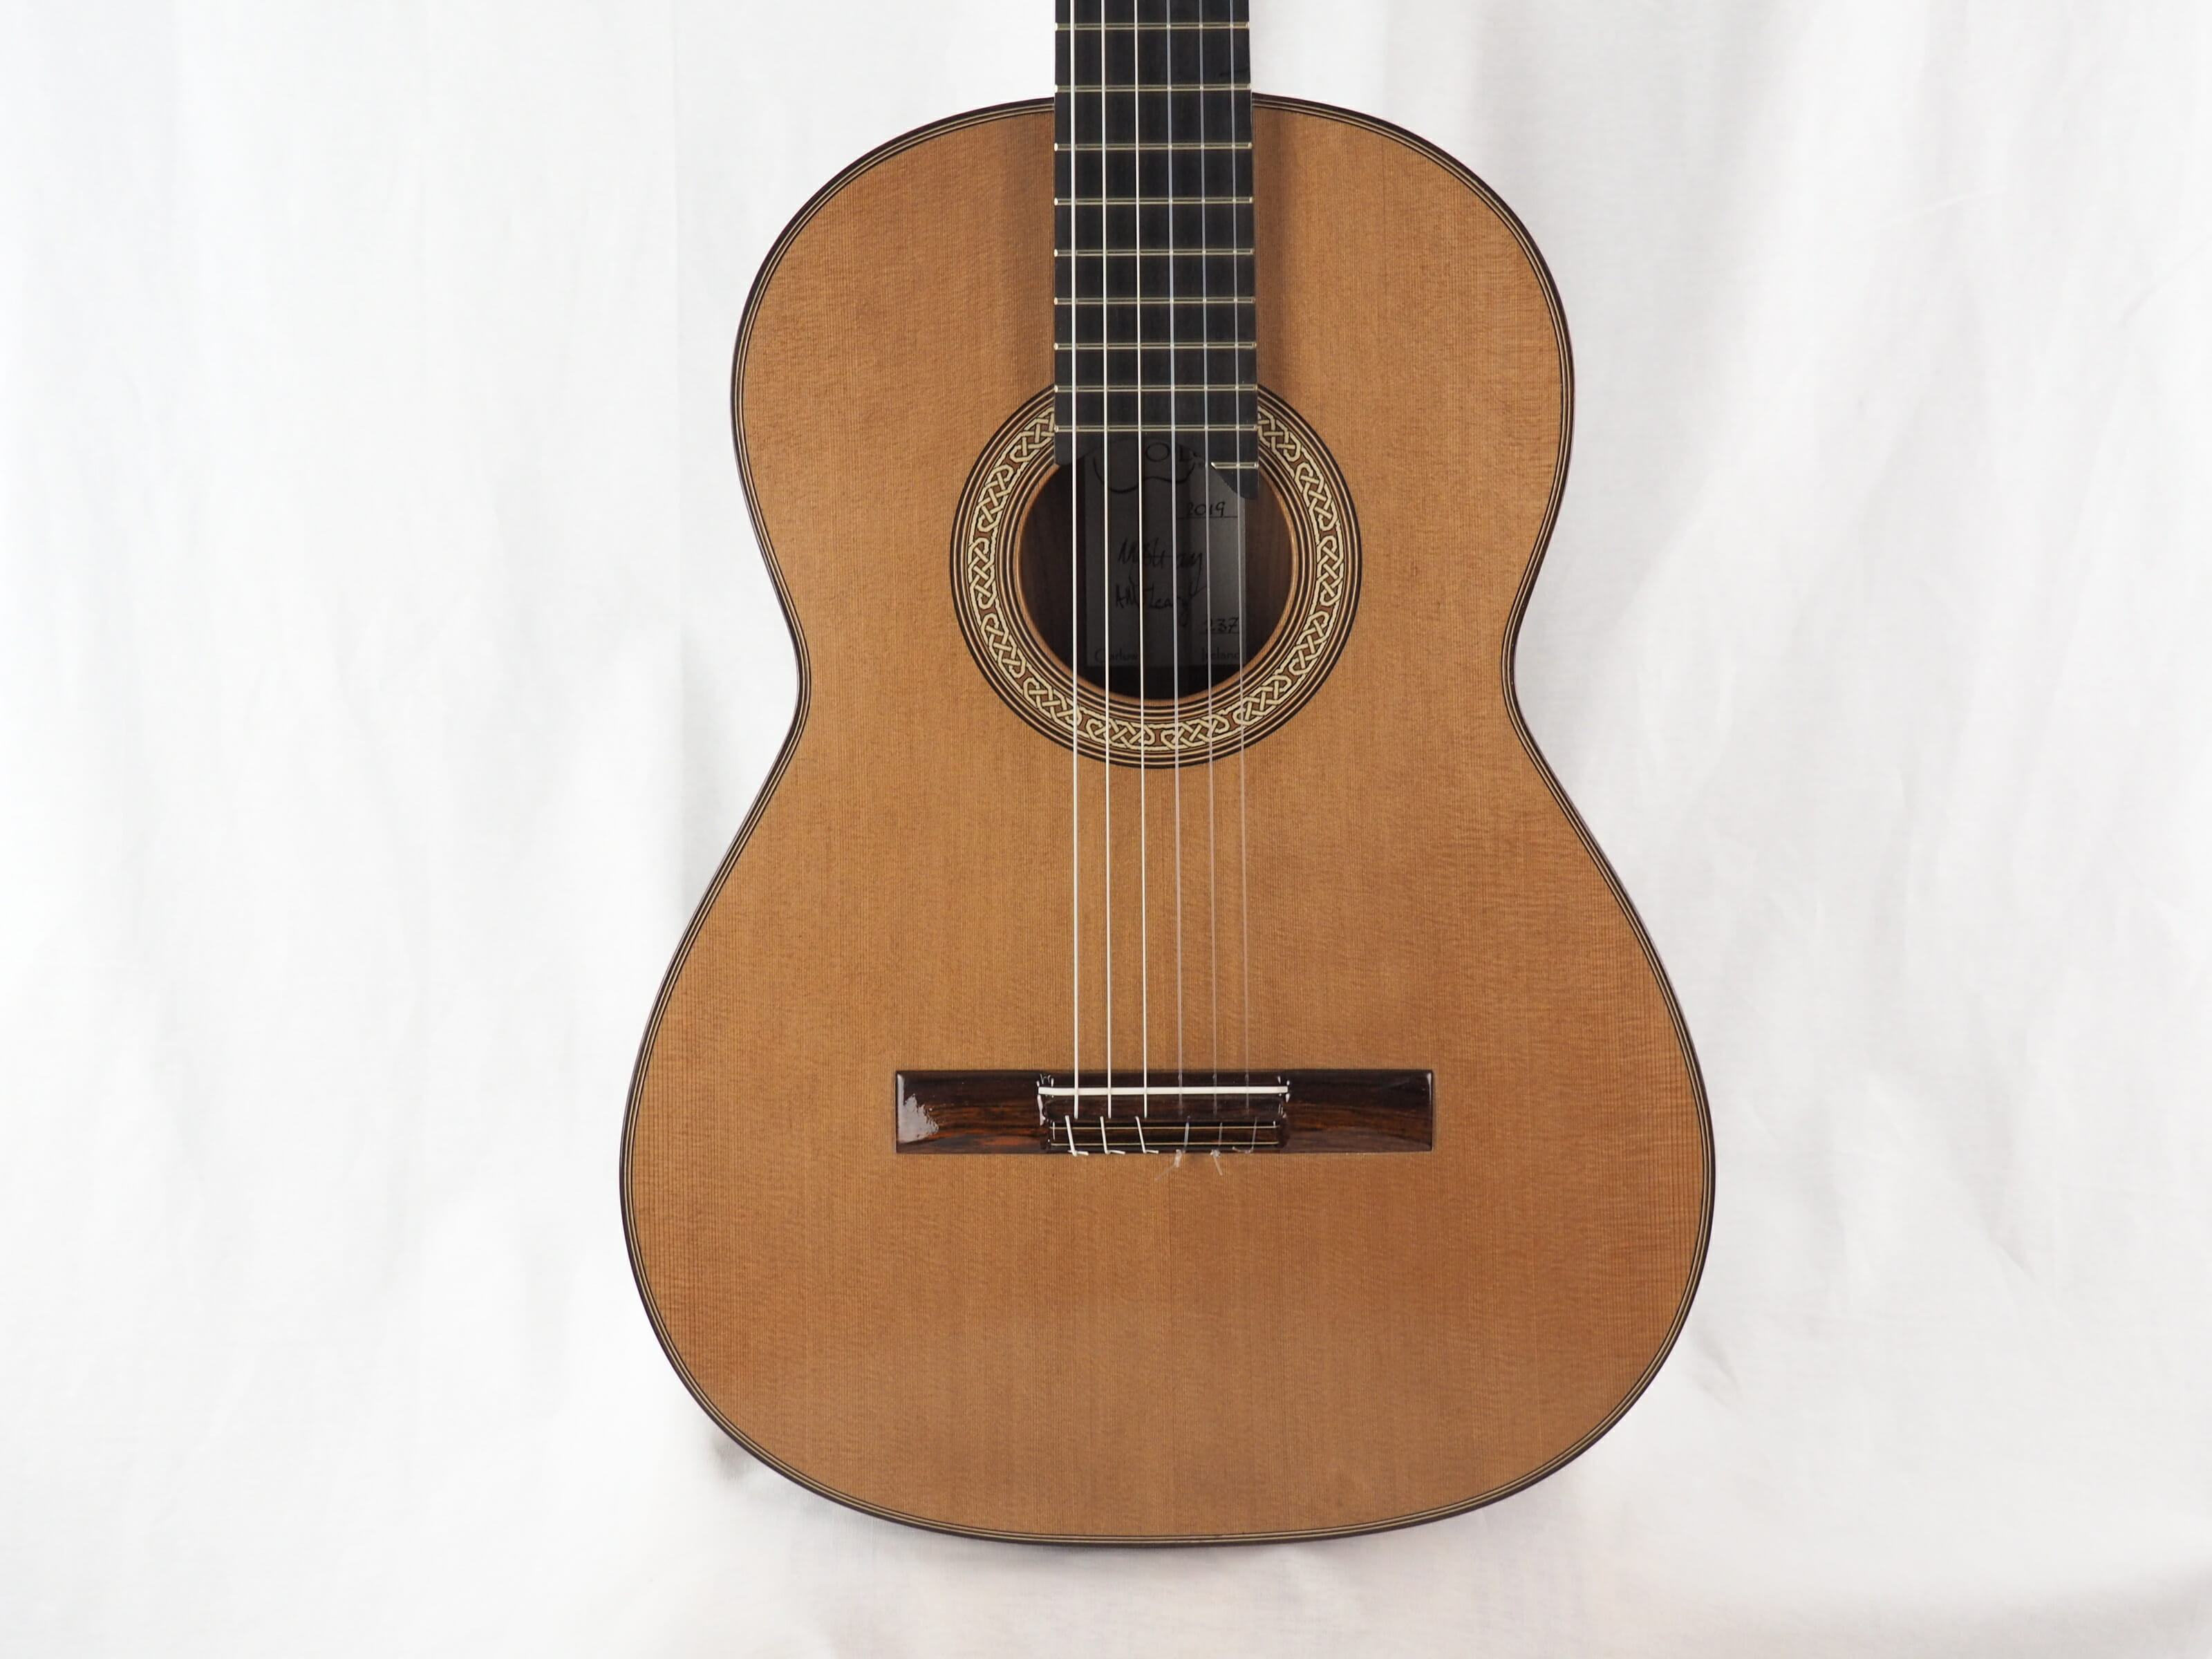 Michael O'Leary luthier guitare classique 19OLE237-12